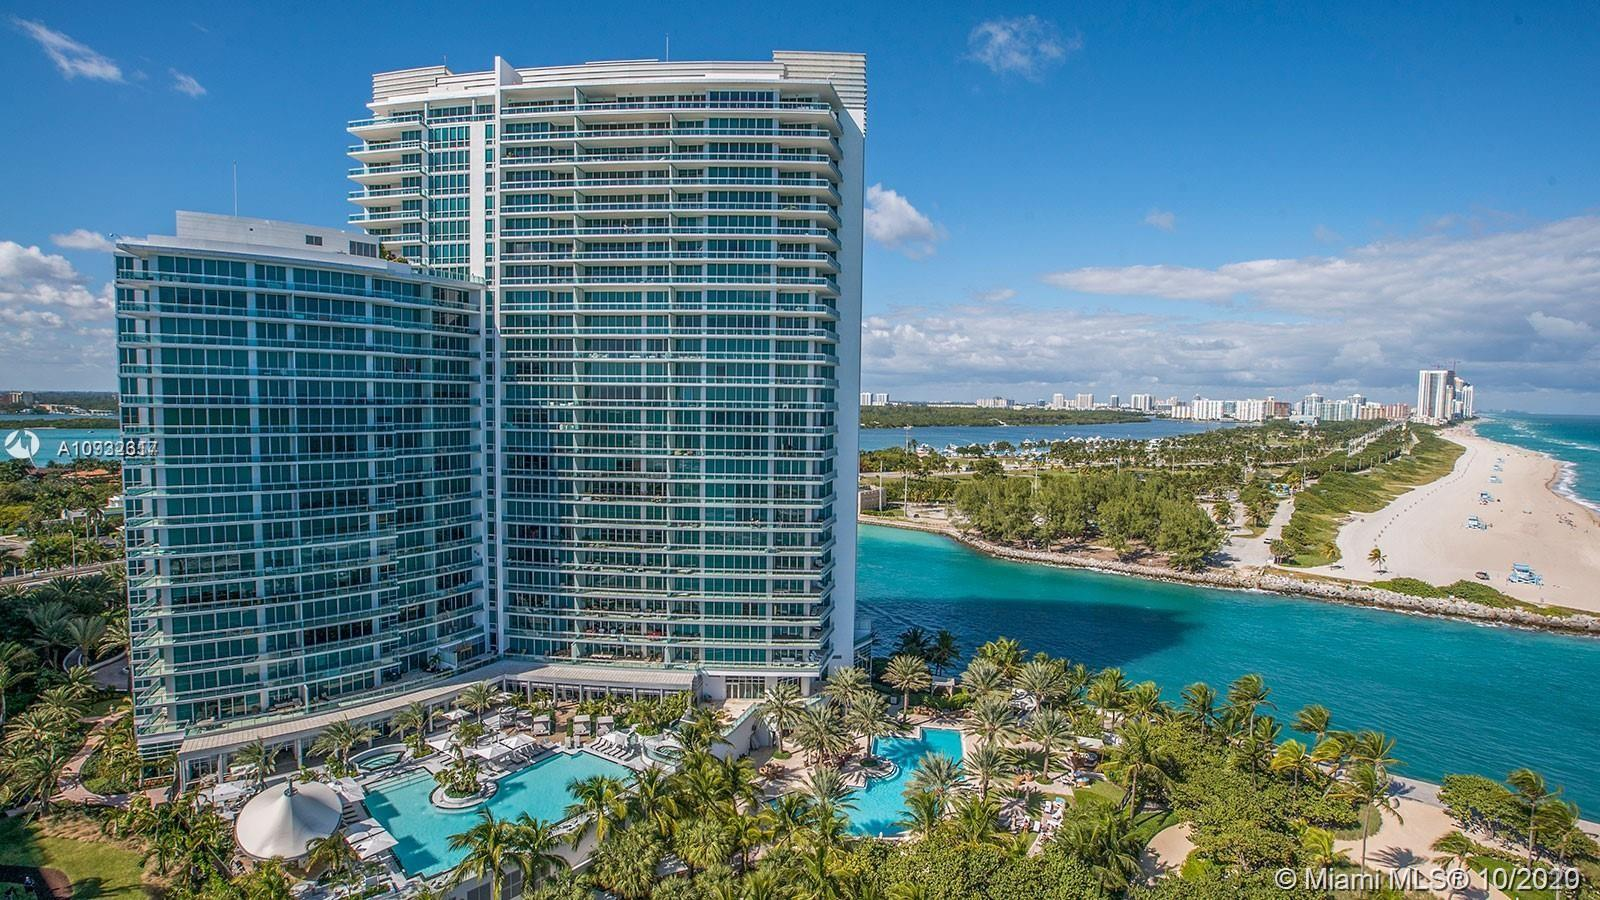 STUNNING CORNER UNIT WITH WRAP AROUND BALCONY OFFERING BEAUTIFUL VIEWS OF THE OCEAN, HAULOVER CUT, OLETA SANDBAR AS WELL AS A A BEJEWELED SUNNY ISLES AT NIGHT. 2 BEDROOM/2.5 BATH LUXURY UNIT ON A HIGH 11TH FLOOR AT THE RITZ CARLTON BAL HARBOUR. LIVING IS HAS A DAILY LIGHT EXPOSURE WITH FLOOR TO CEILING WALLS OF GLASS BEING IN THE CORNER OF THE BUILDING . PRIVATE ELEVATOR TO THE APARTMENT WITH CENTRAL FOYER ACCESS, DINING ROOM, LIVING ROOM & FULLY EQUIPPED KITCHEN / WOLF & SUBZERO APPLIANCES, GORGEOUS ITALIAN CABINETRY, WASHER & DRYER. KING BEDS IN BOTH BEDROOMS WITH A QUEEN SIZE PULL OUT COUCH. RITZ CARLTON RENTAL PROGRAM IS OPTIONAL. LUXURY HOTEL AMENITIES INCLUDE POOL & BEACH, SPA, RESTAURANT, GYM AND HOUSE CAR. CLOSE TO BAL HARBOUR SHOPS AND PLACE OF WORSHIP.